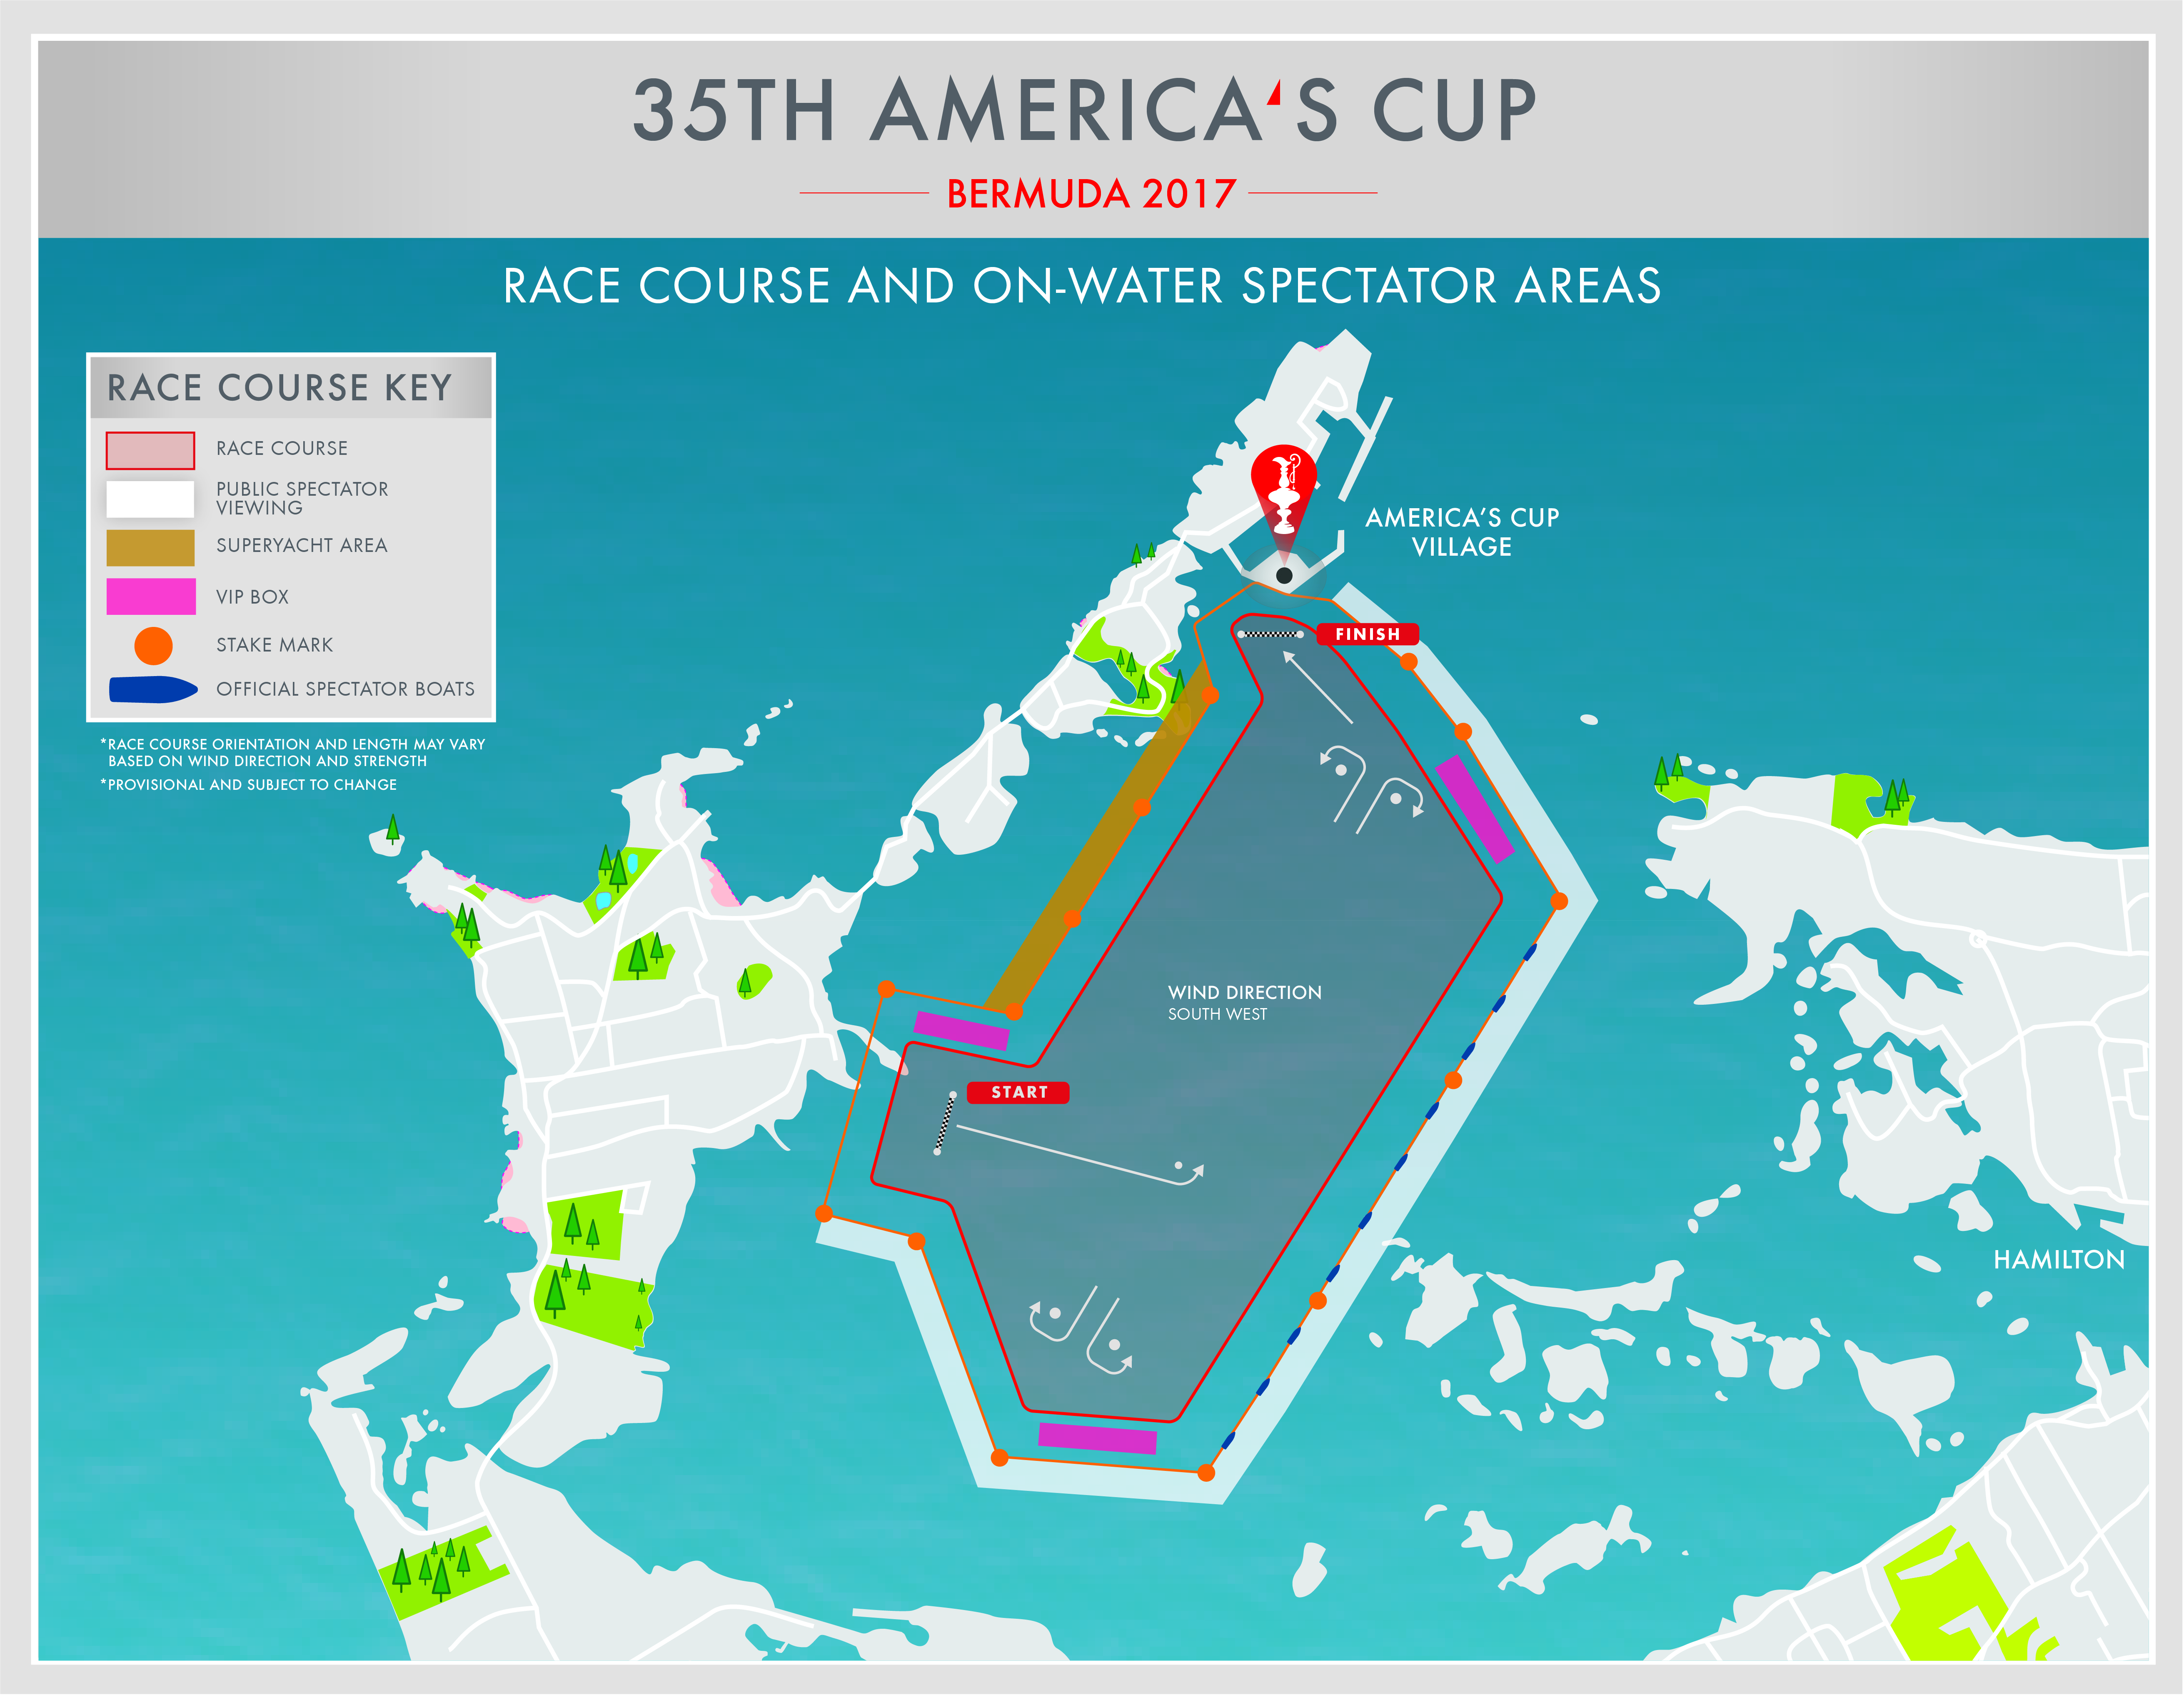 America's Cup 2017 in Bermuda - Race Course